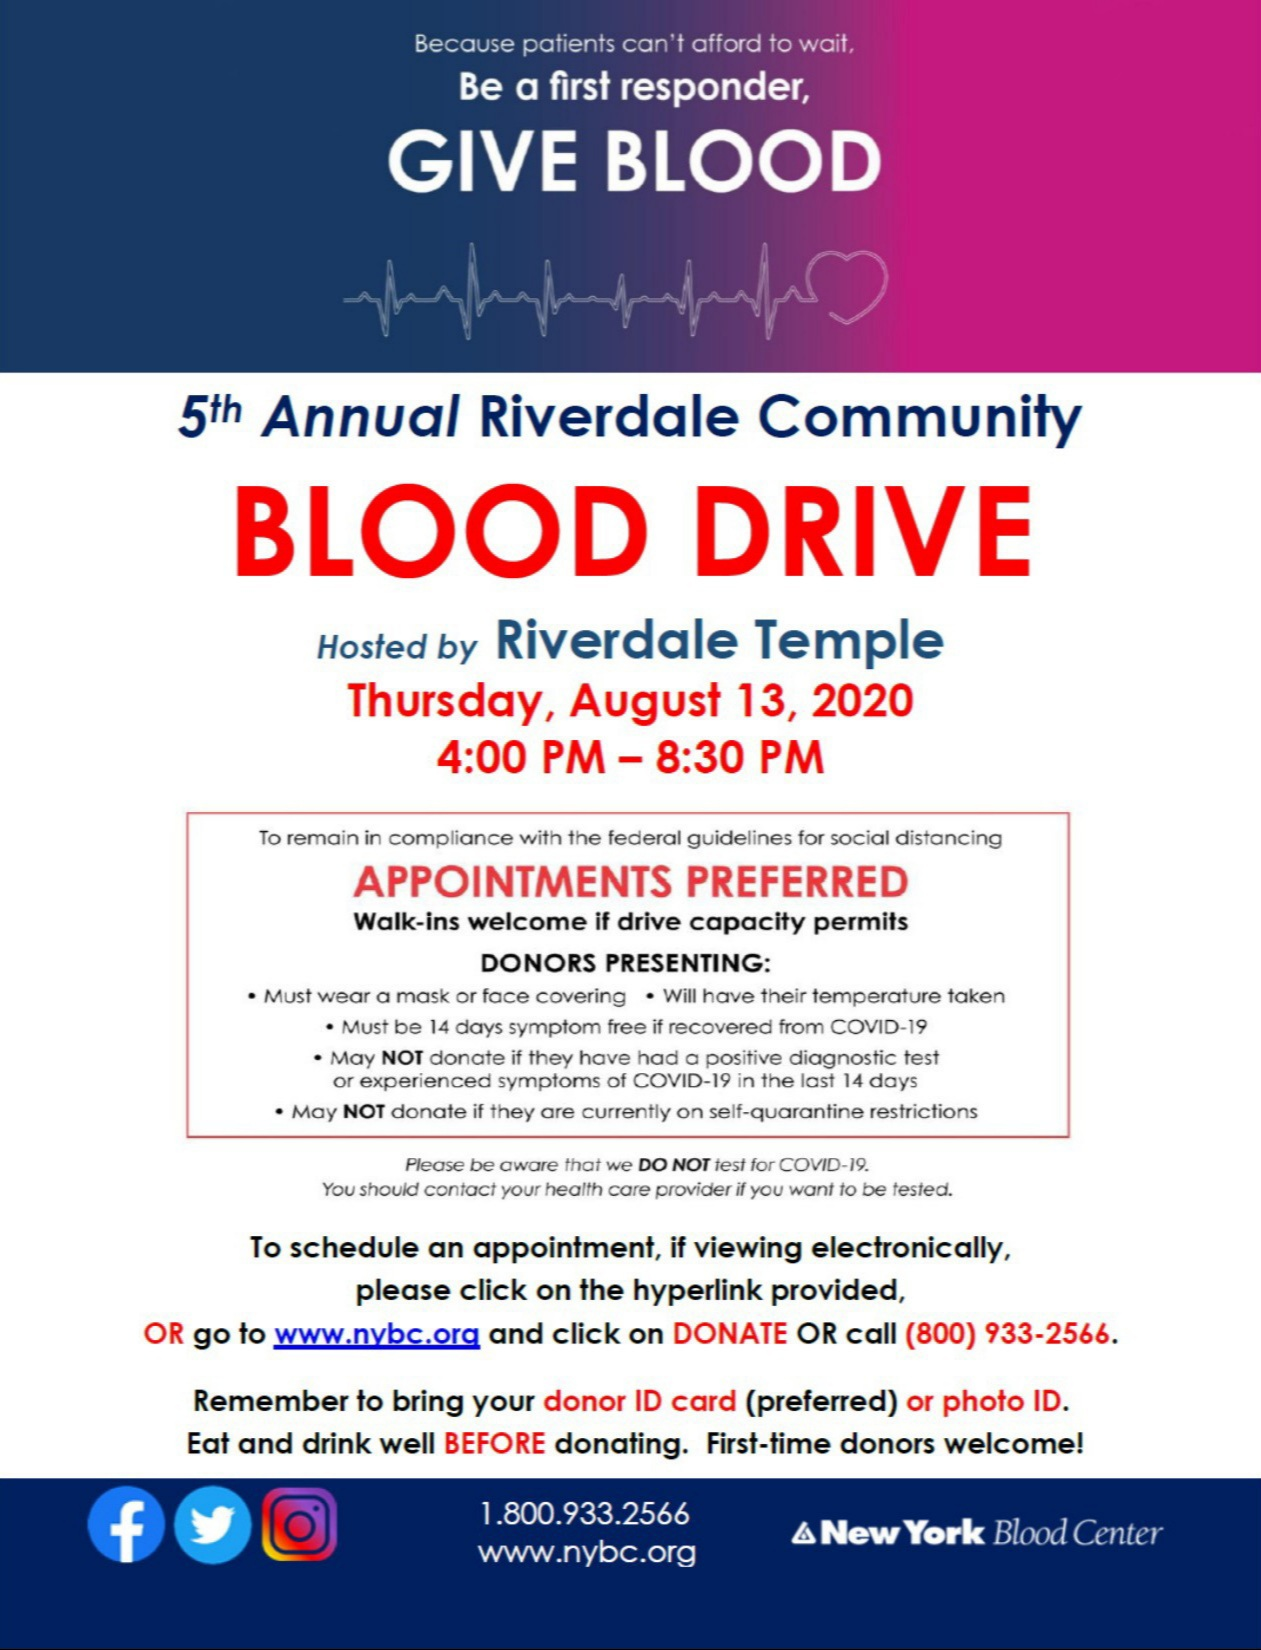 5th Annual Riverdale Community Blood Drive